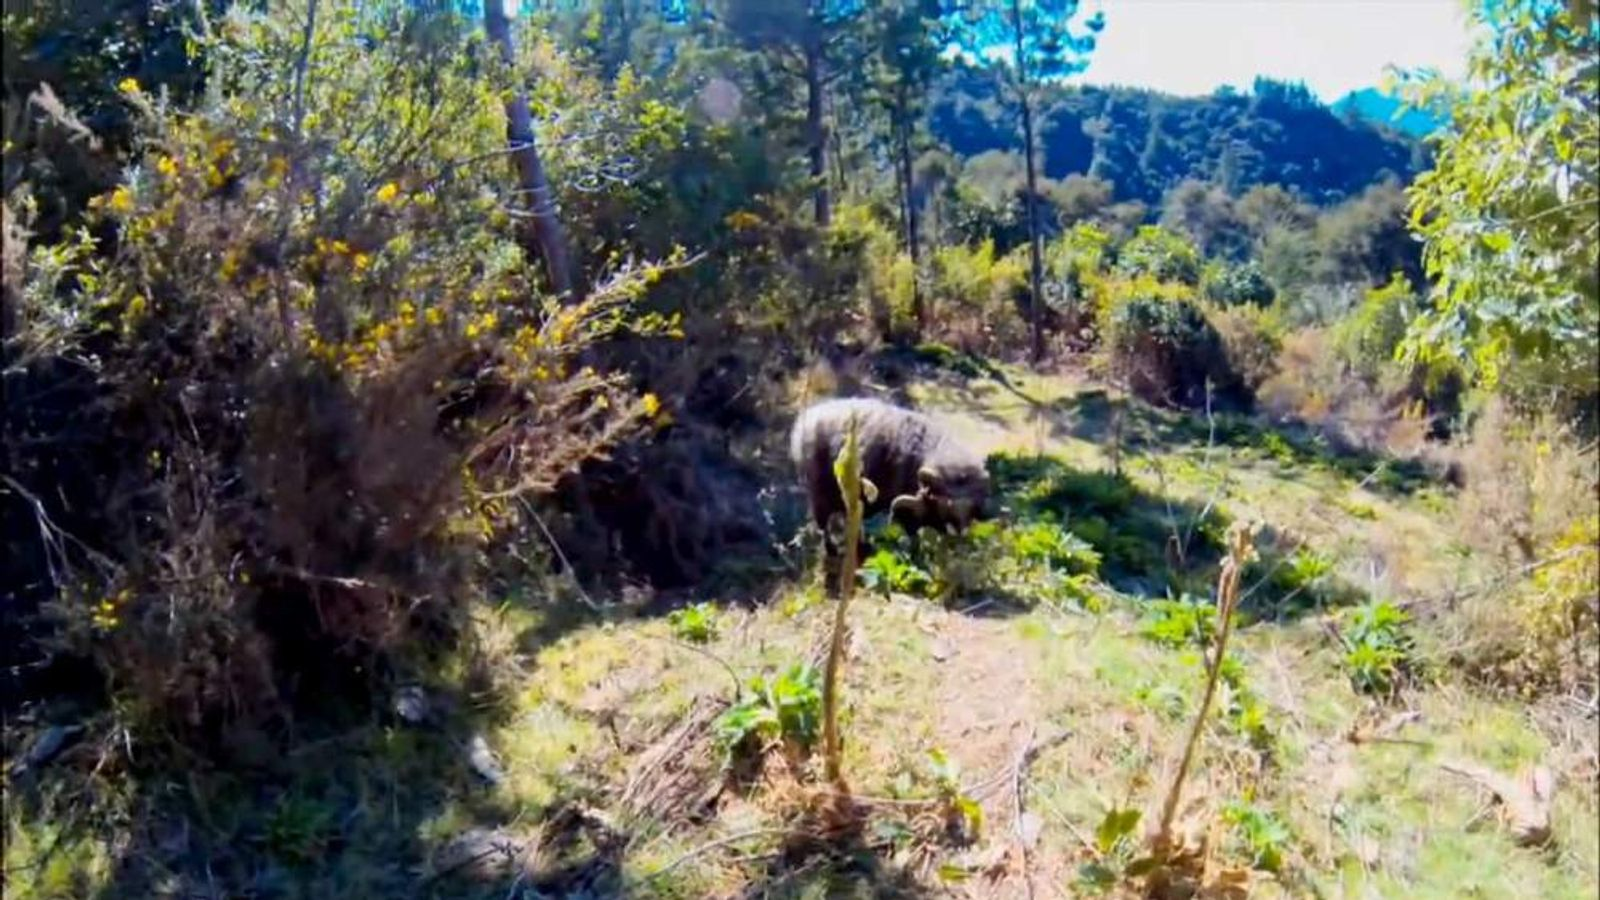 Ram butts a drone after it gets too close, then goes for its owner